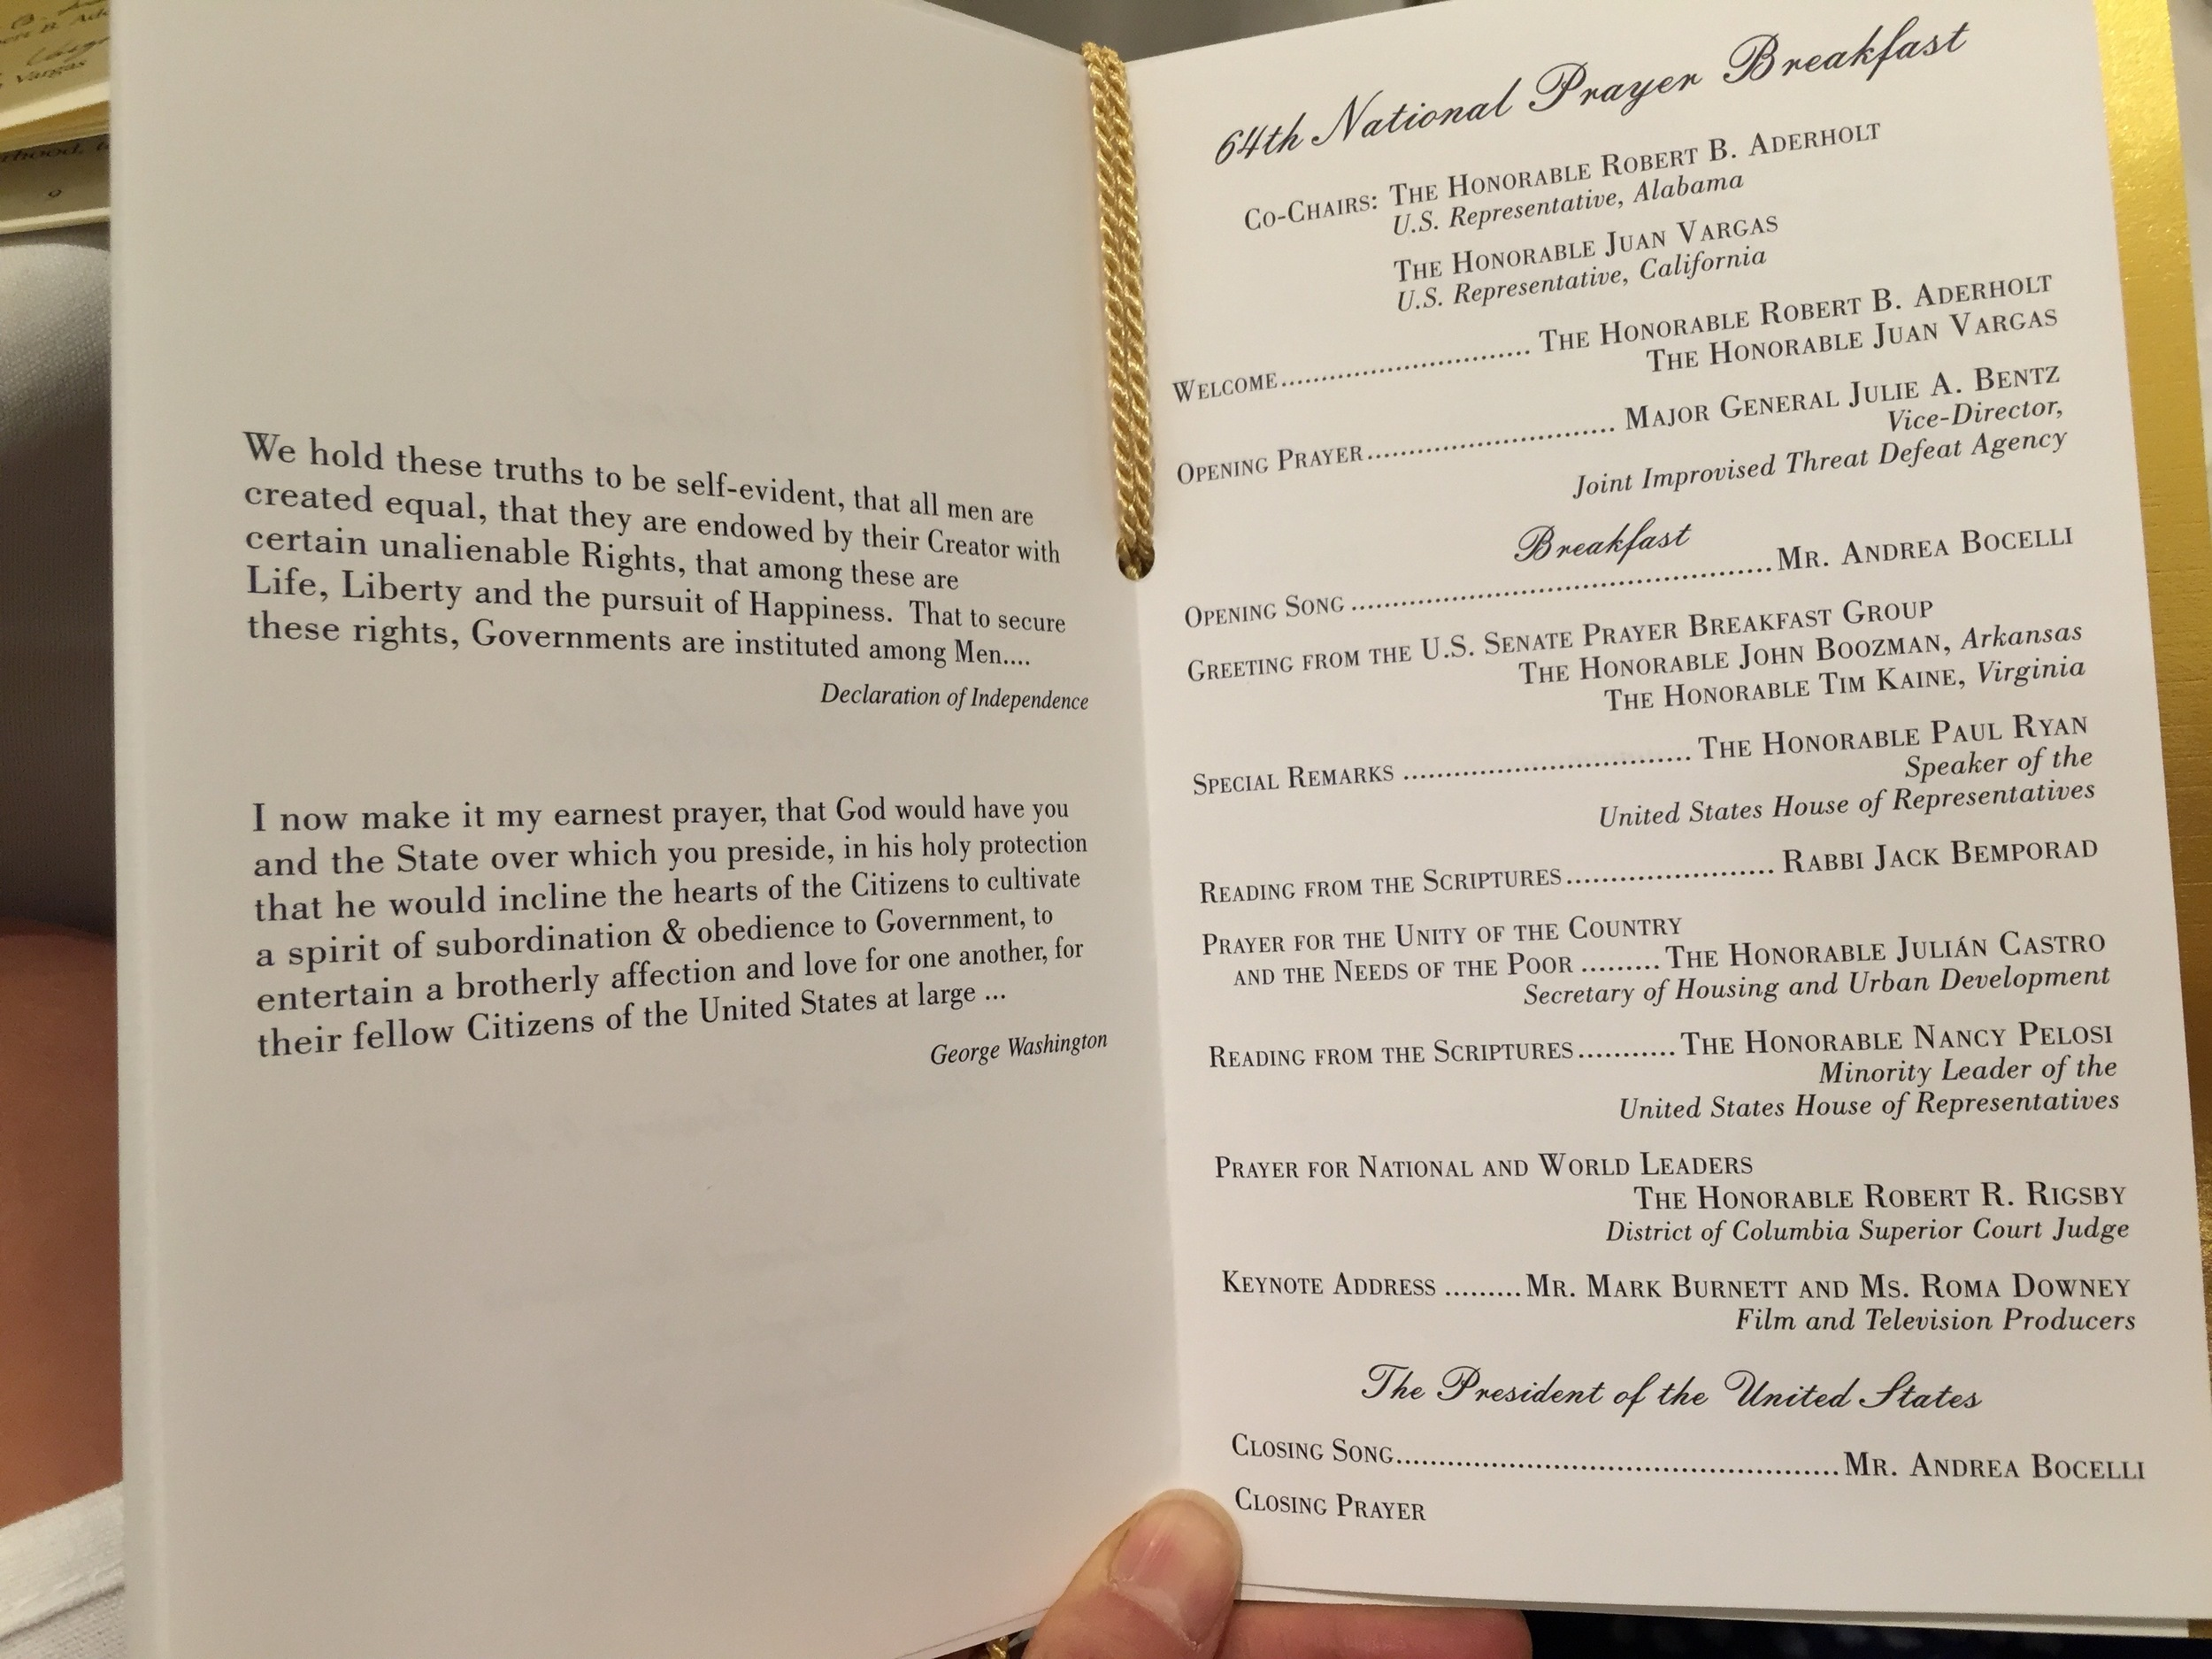 The main program from the breakfast.